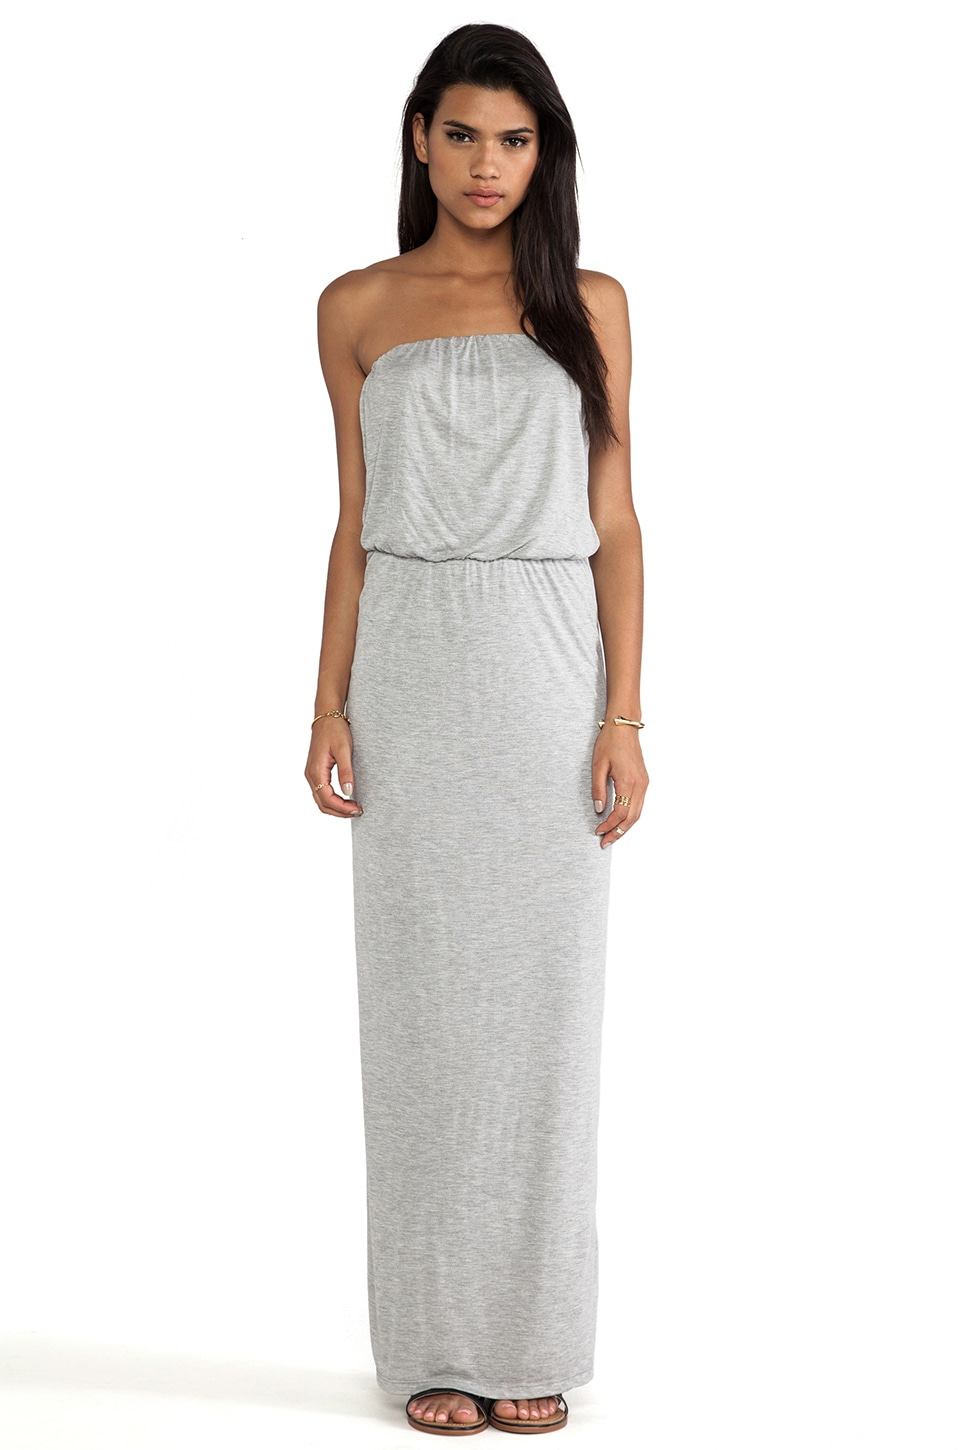 Velvet by Graham & Spencer Tammie New Fine Slinky Dress in Heather Grey